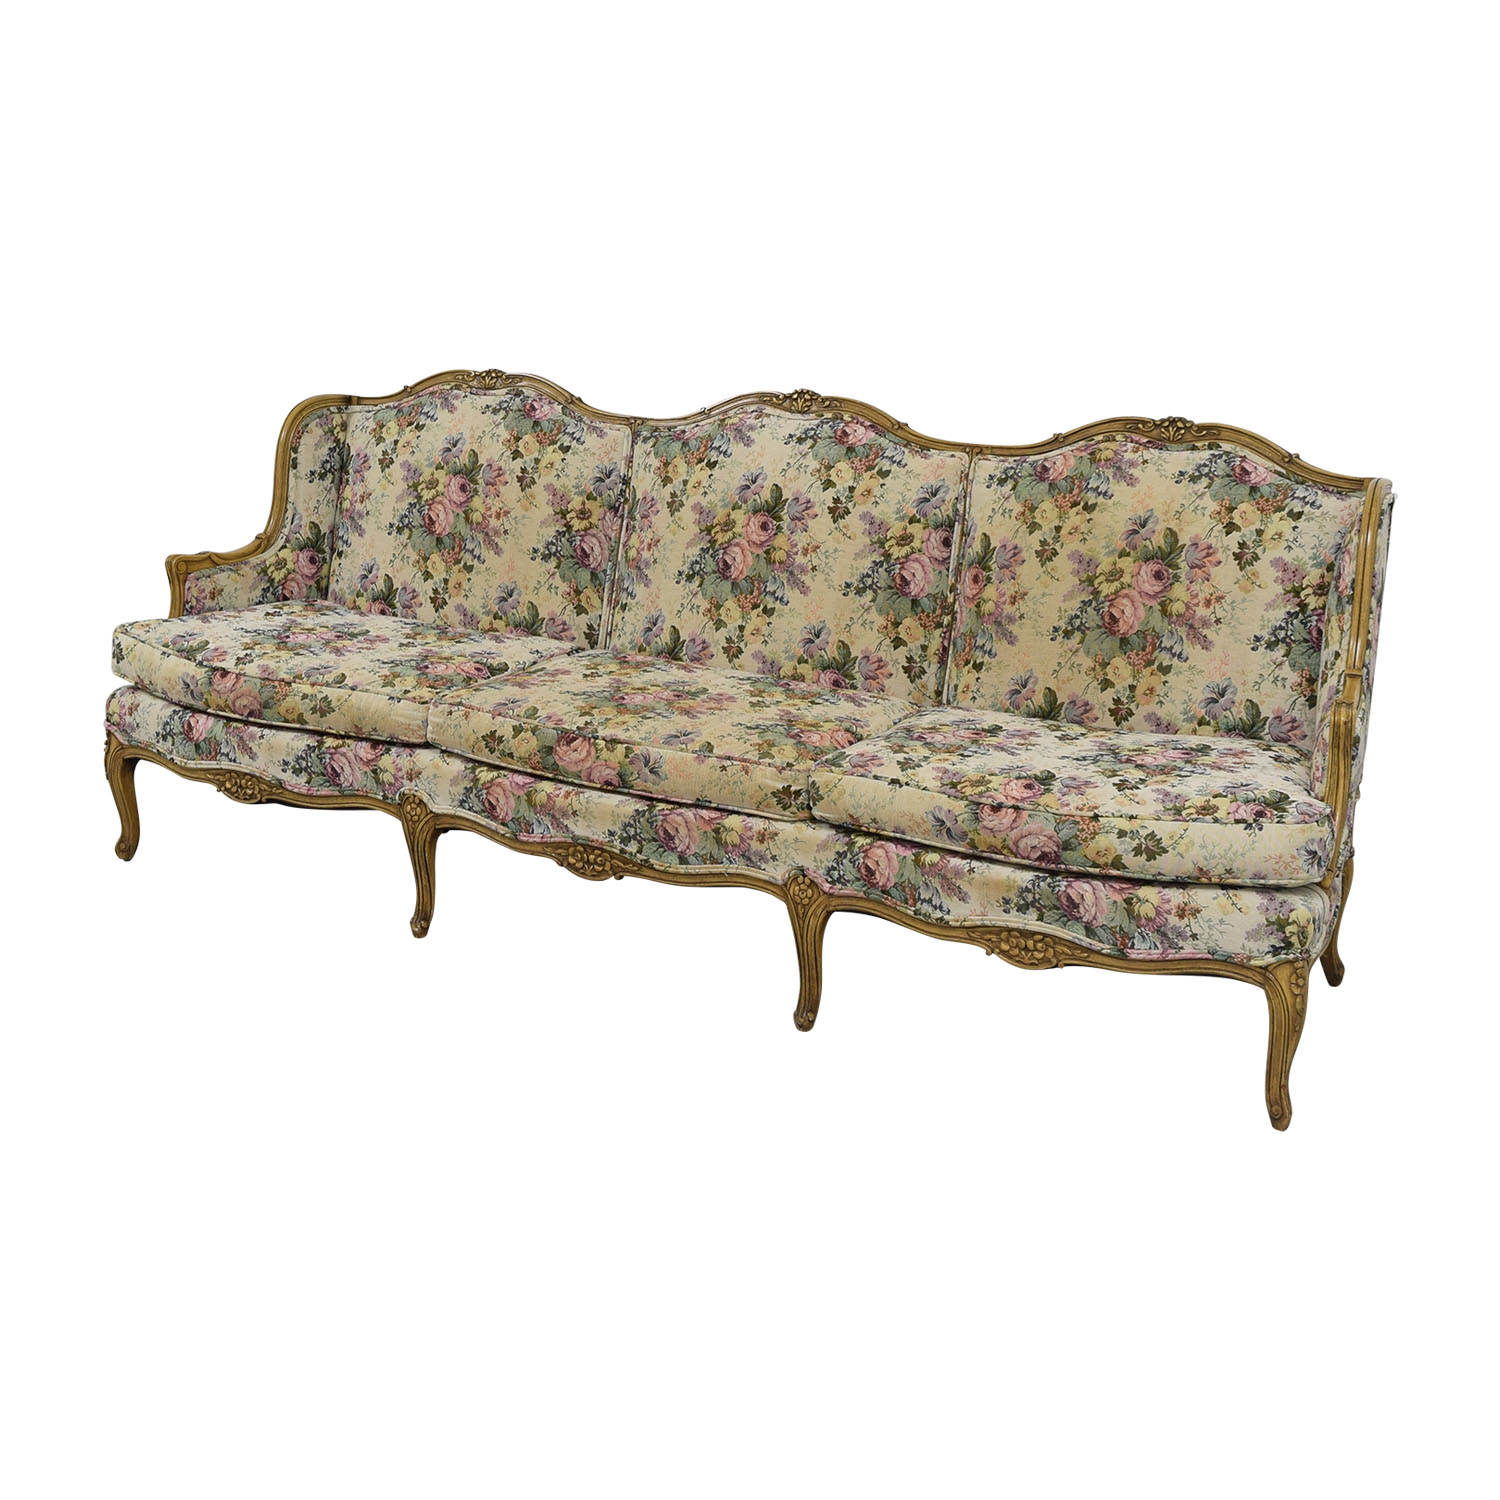 seating levin room living loveseat glider furniture zoom product and sofia hover loveseats item floral to sofas